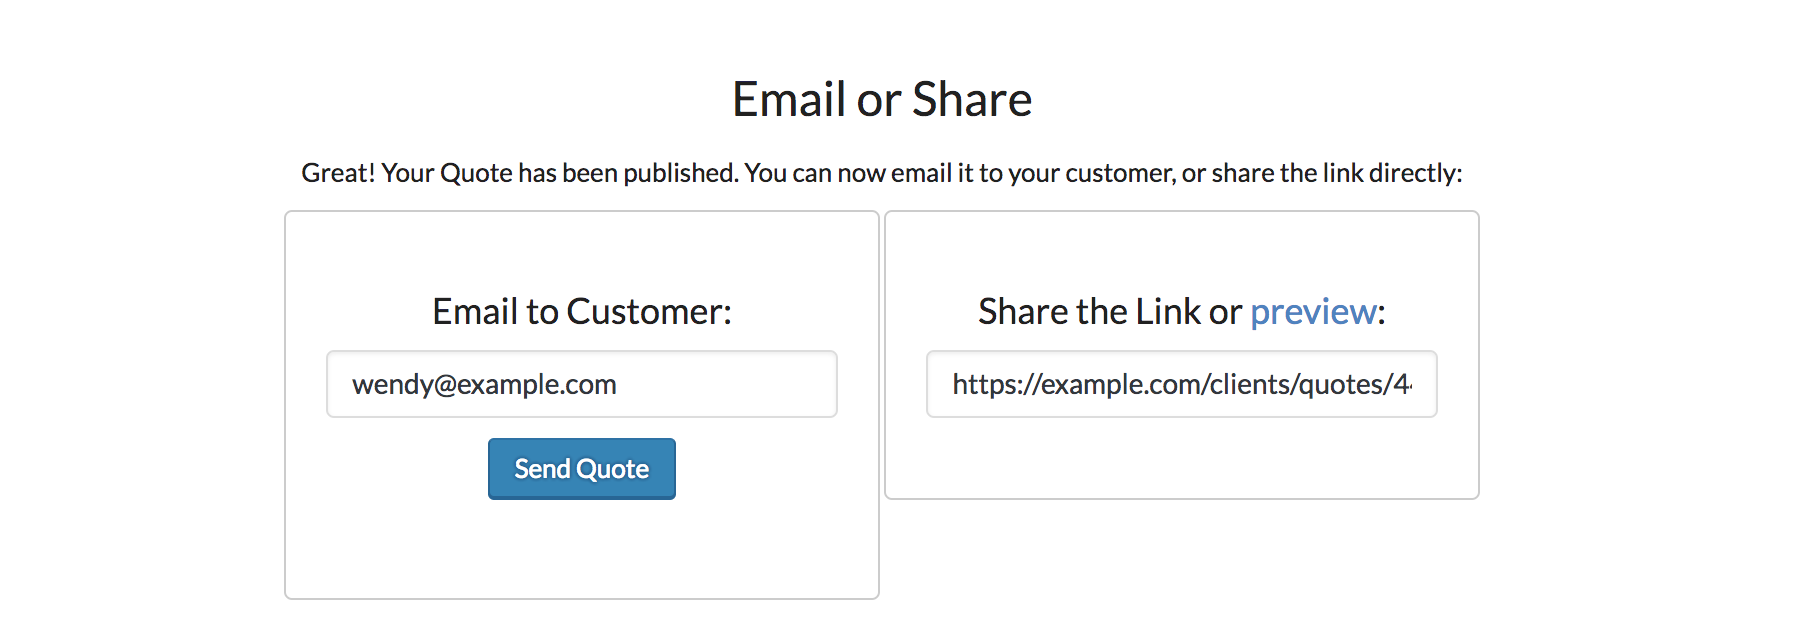 Send a Quote via Email from Jetpack CRM